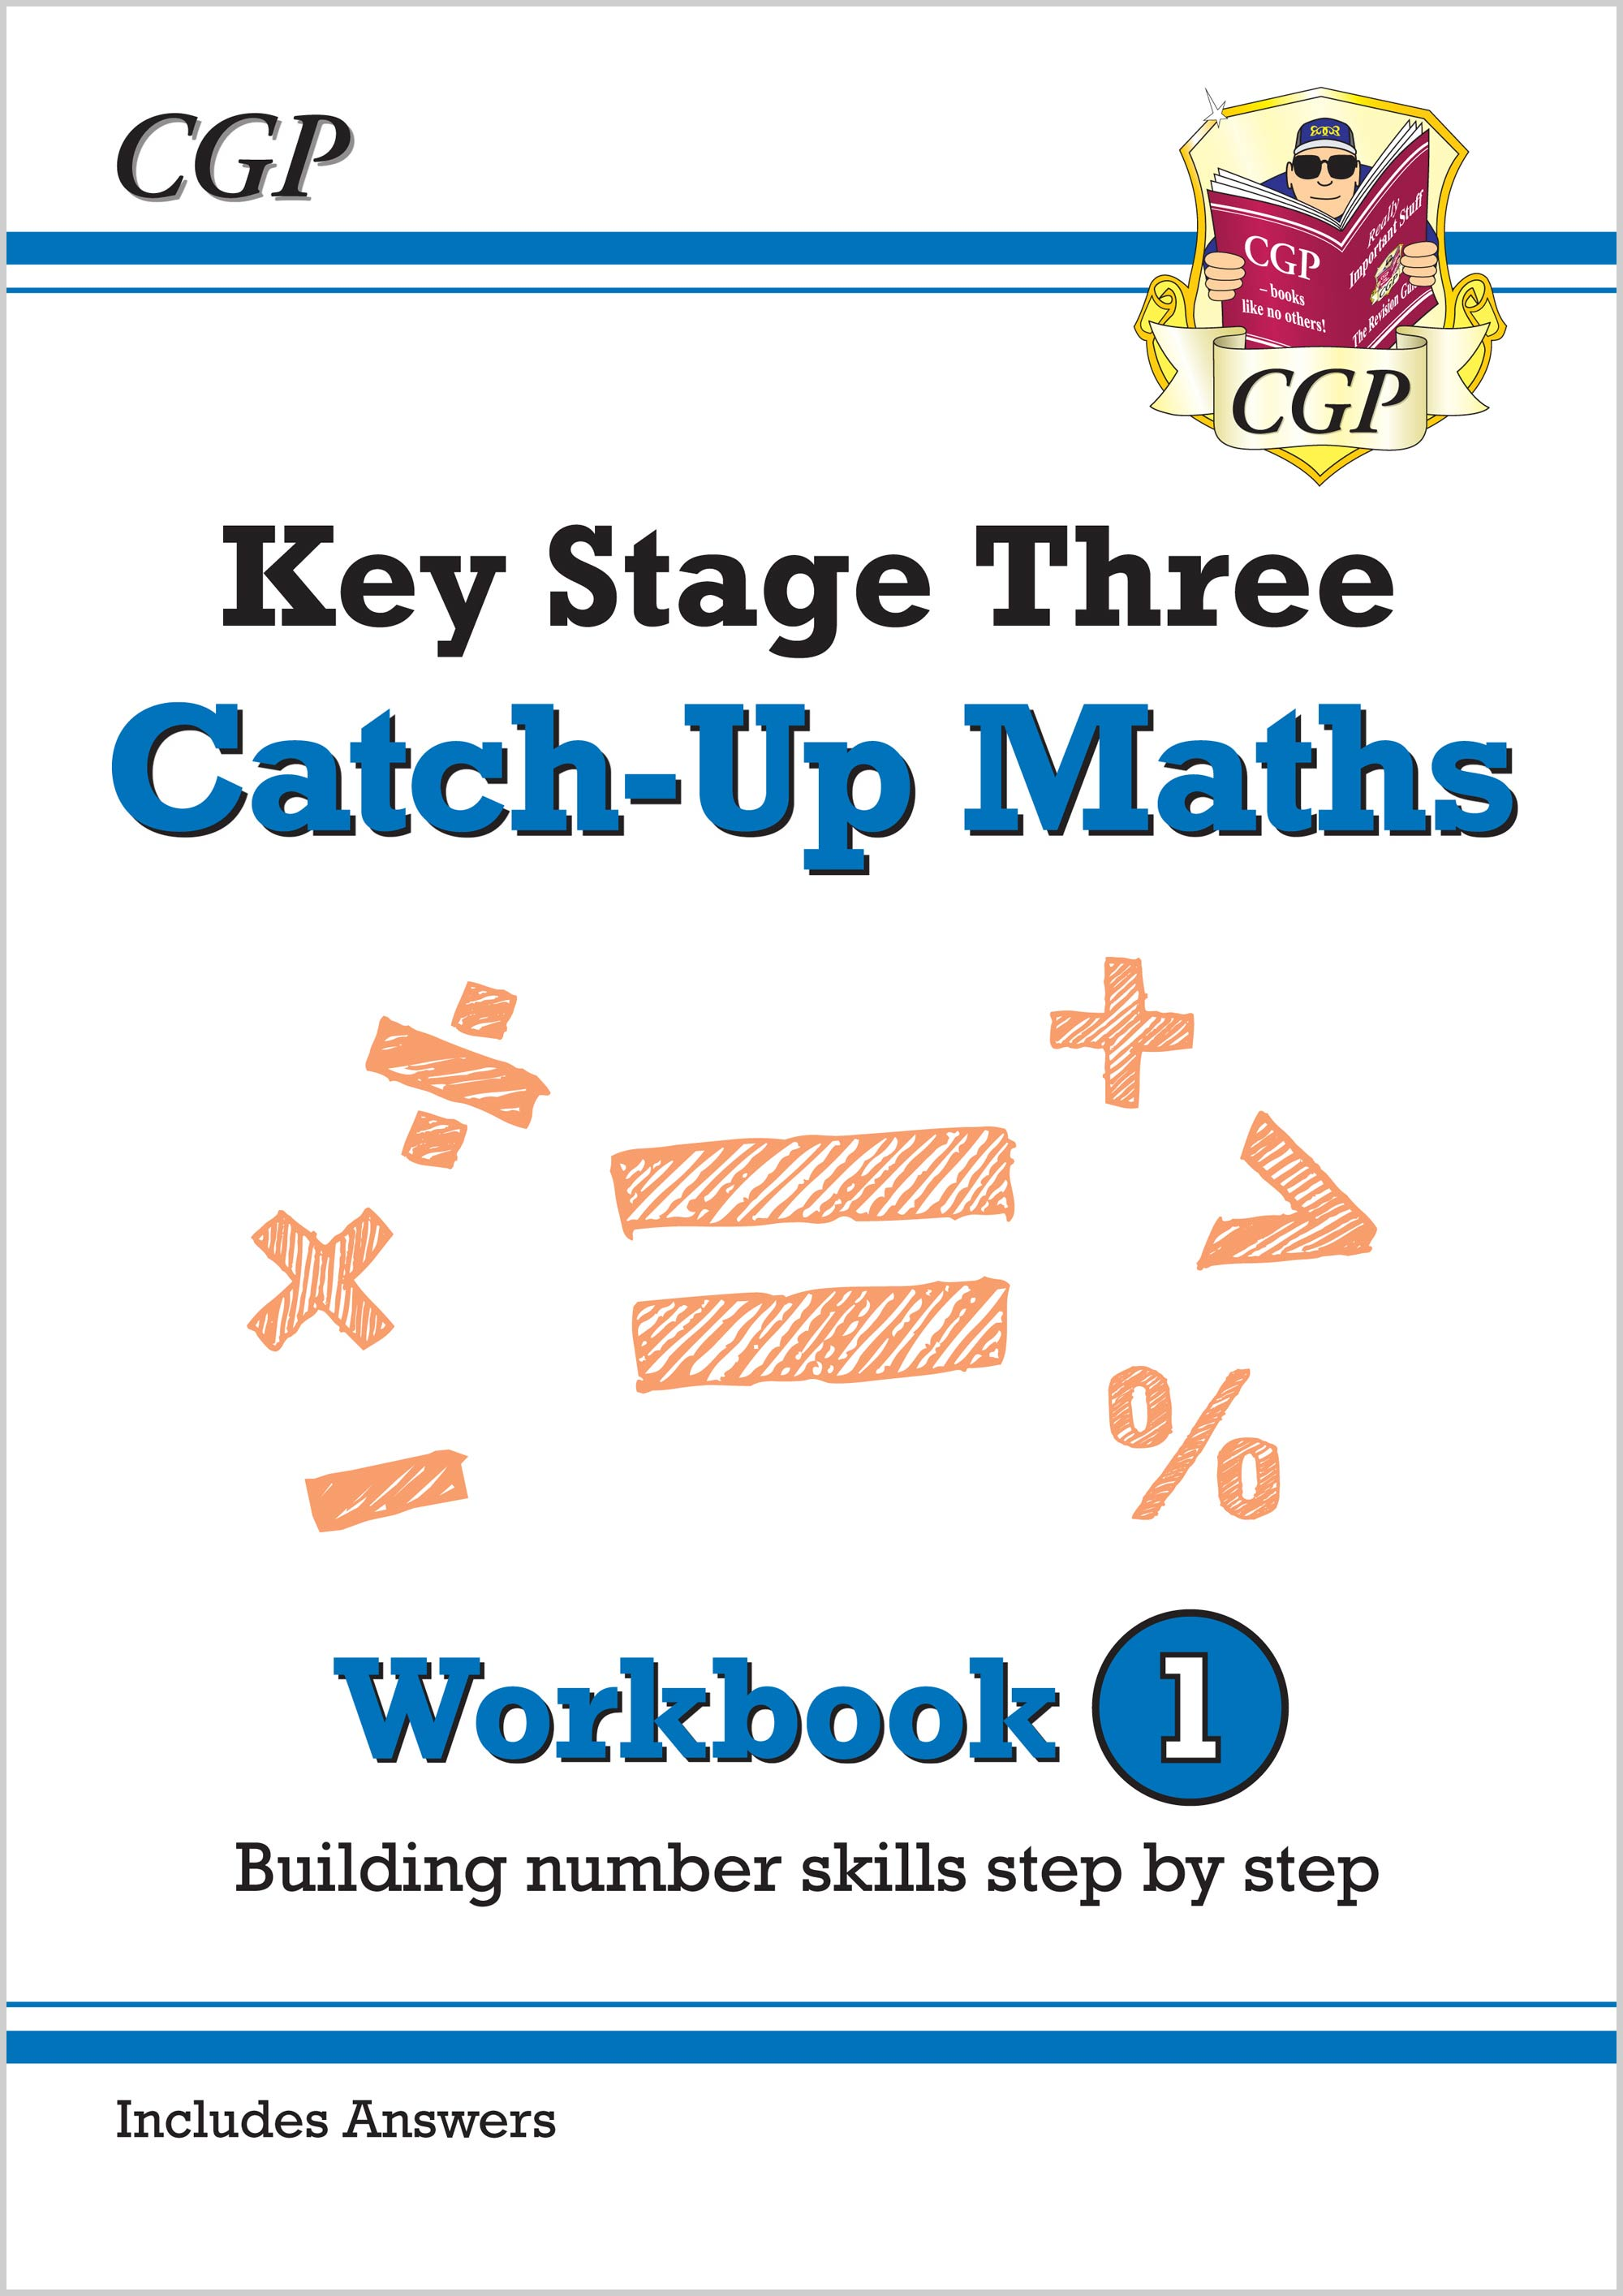 MBNW131 - New KS3 Maths Catch-Up Workbook 1 (with Answers)